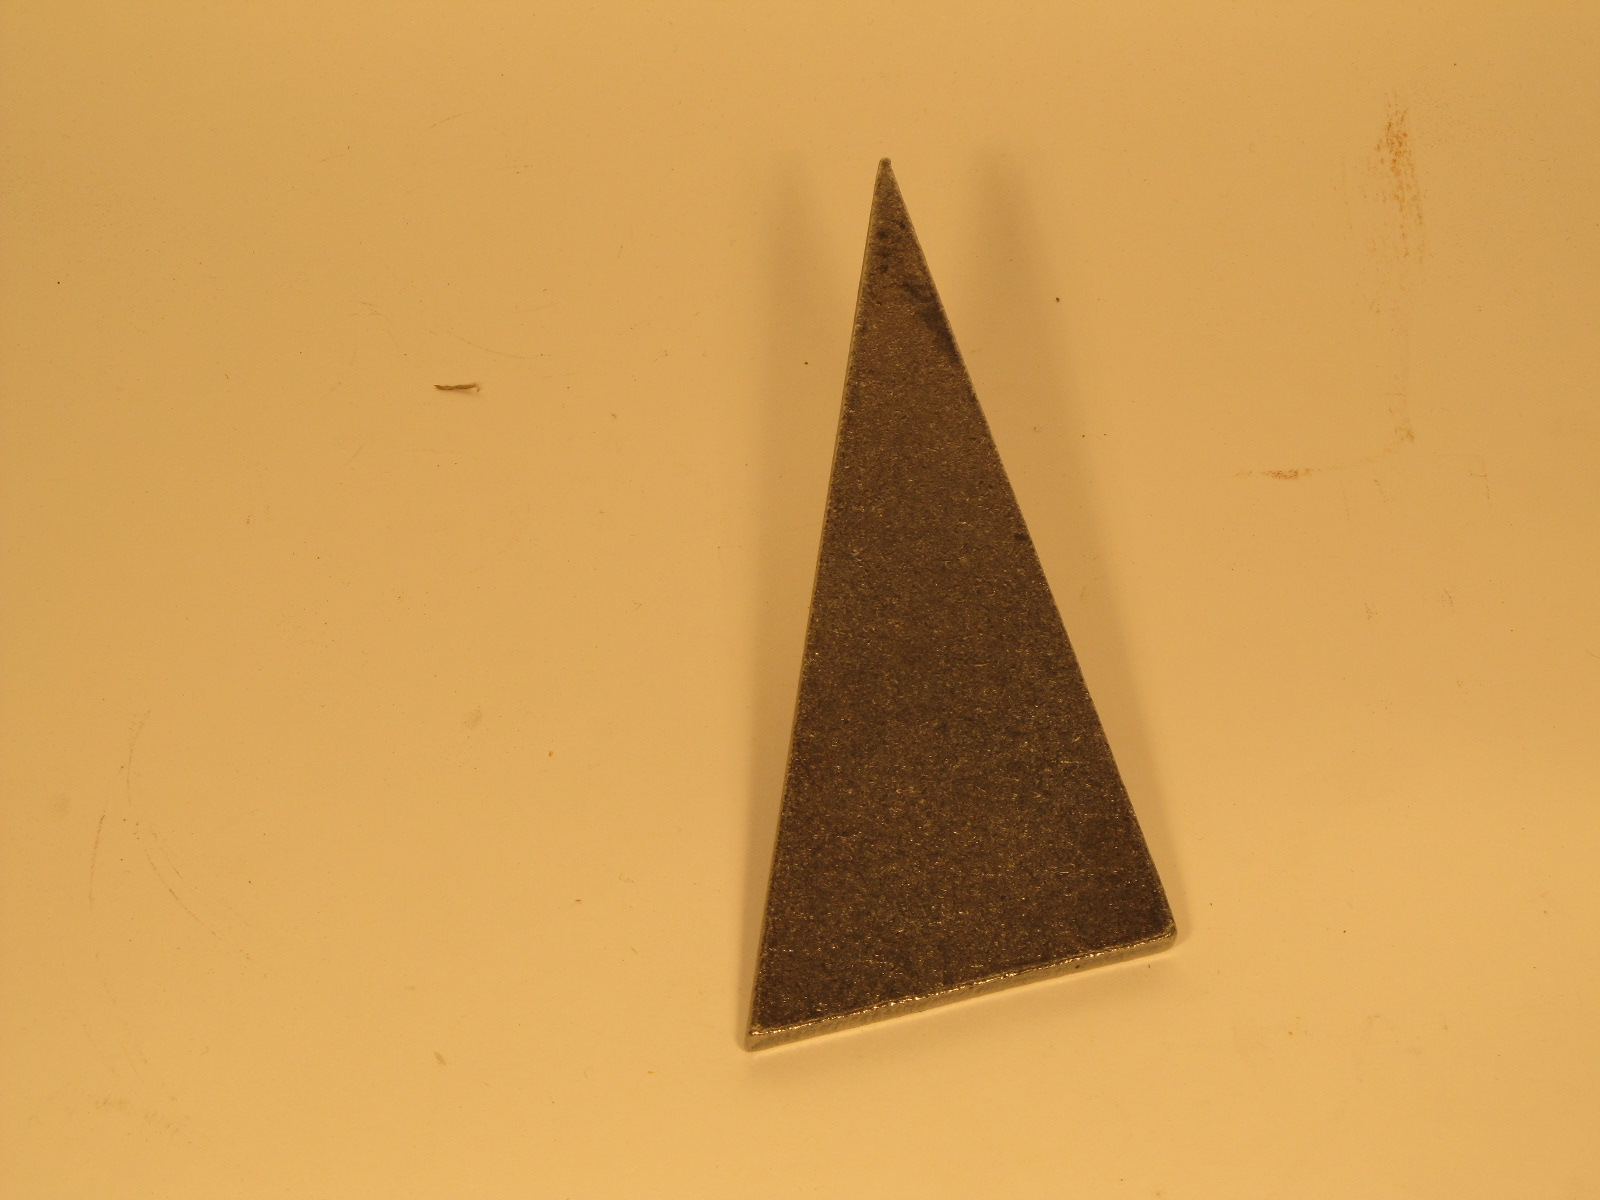 LRD TORSION TRIANGLE